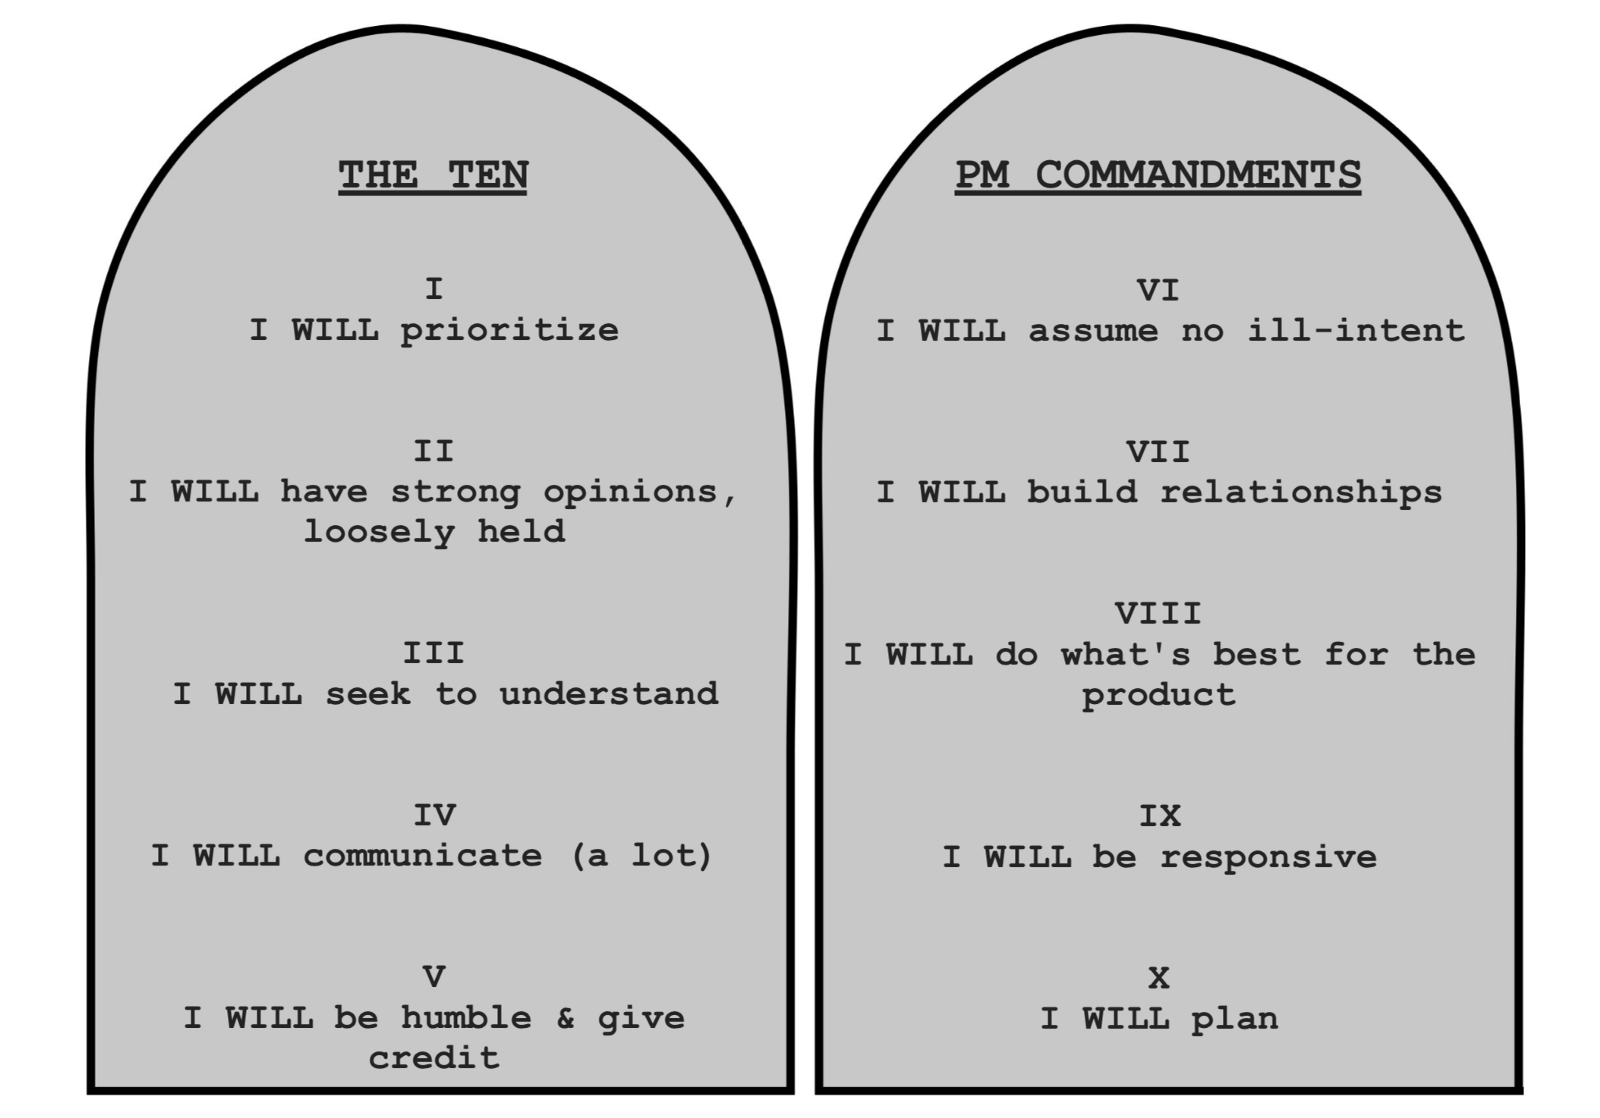 On Values, The 10 PM Commandments & Communication